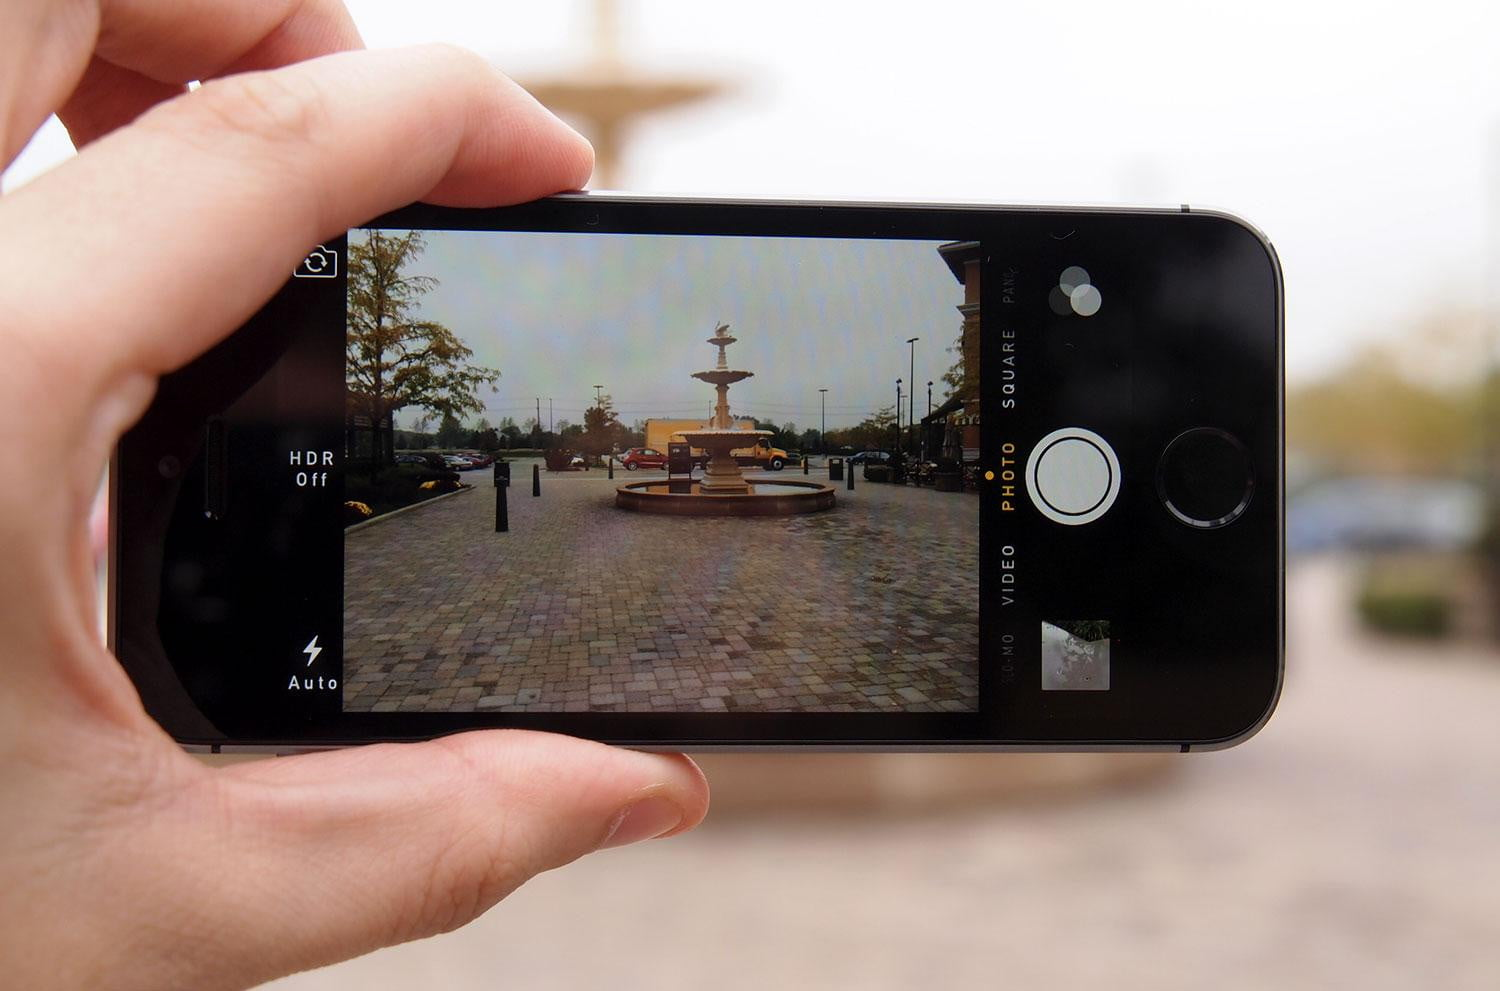 iPhone 5s: Tips for the Camera and Video Recording